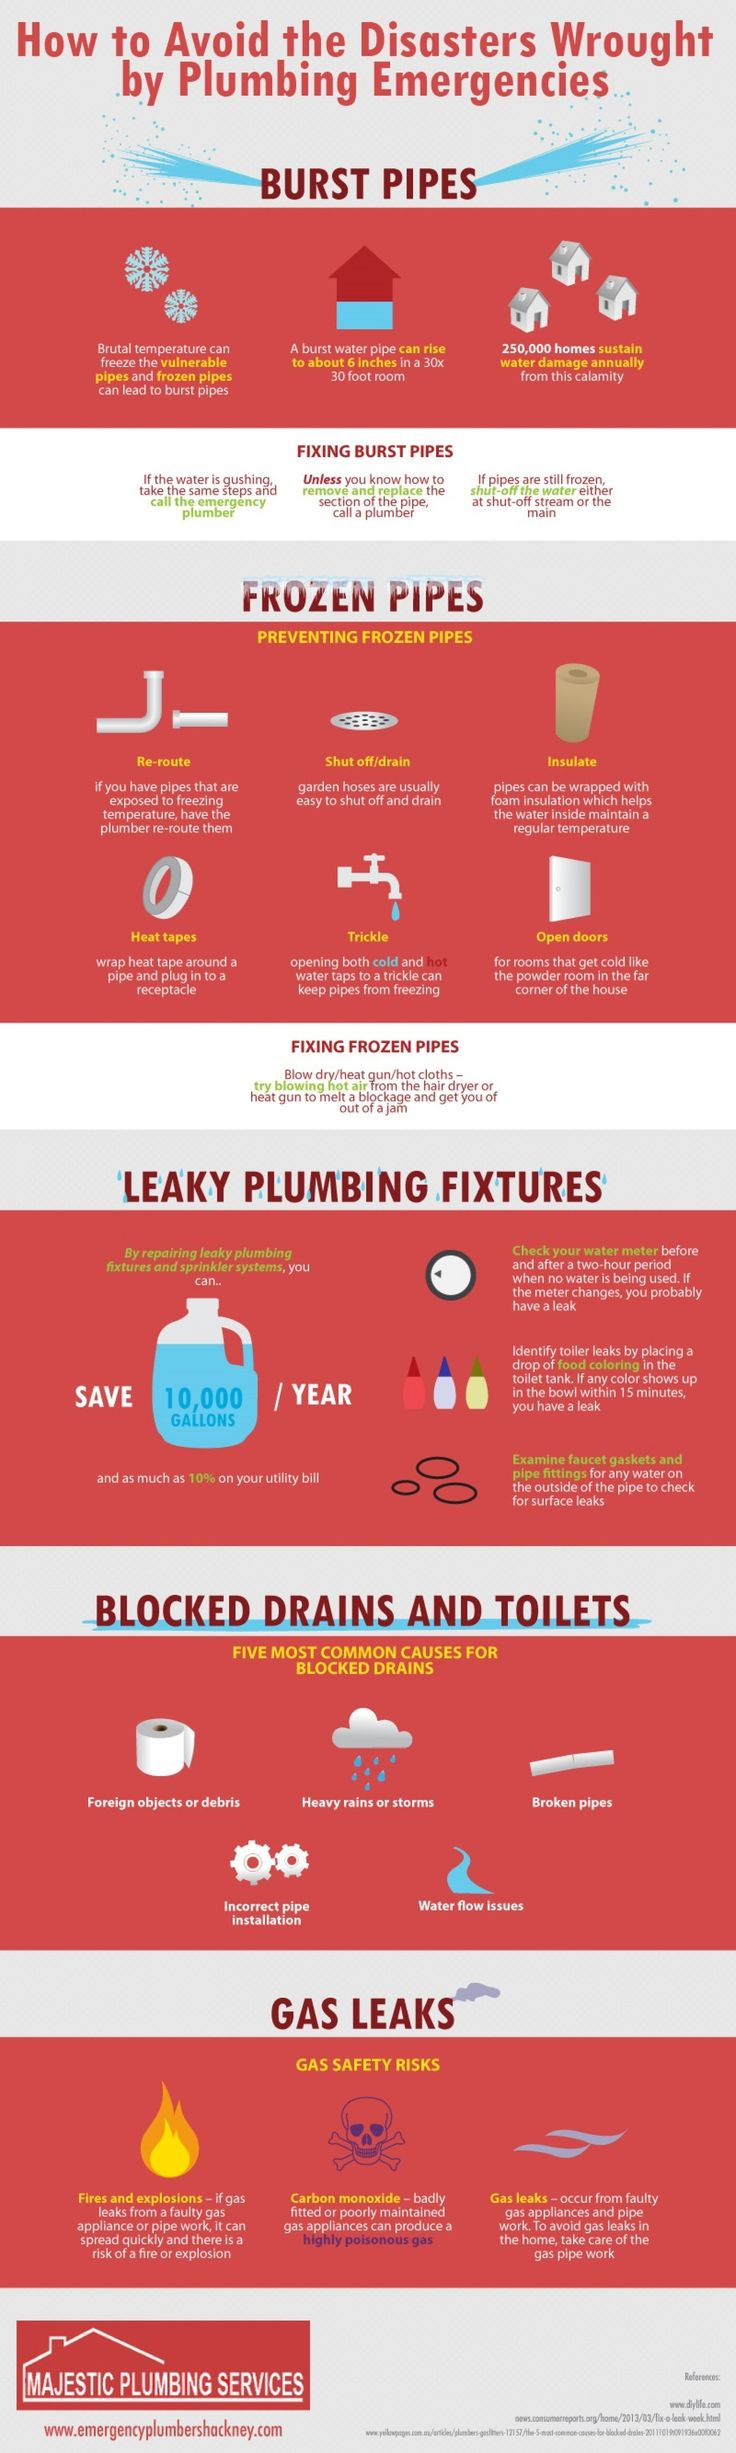 Plumbing emergencies happen when you least expect them. If not controlled immediately, they can result to damage and destruction of property, not to mention loss of life in case of gas leaks. Check out this infographic by user shanemarks3 of Visual.ly that features tips on how to avoid disasters!